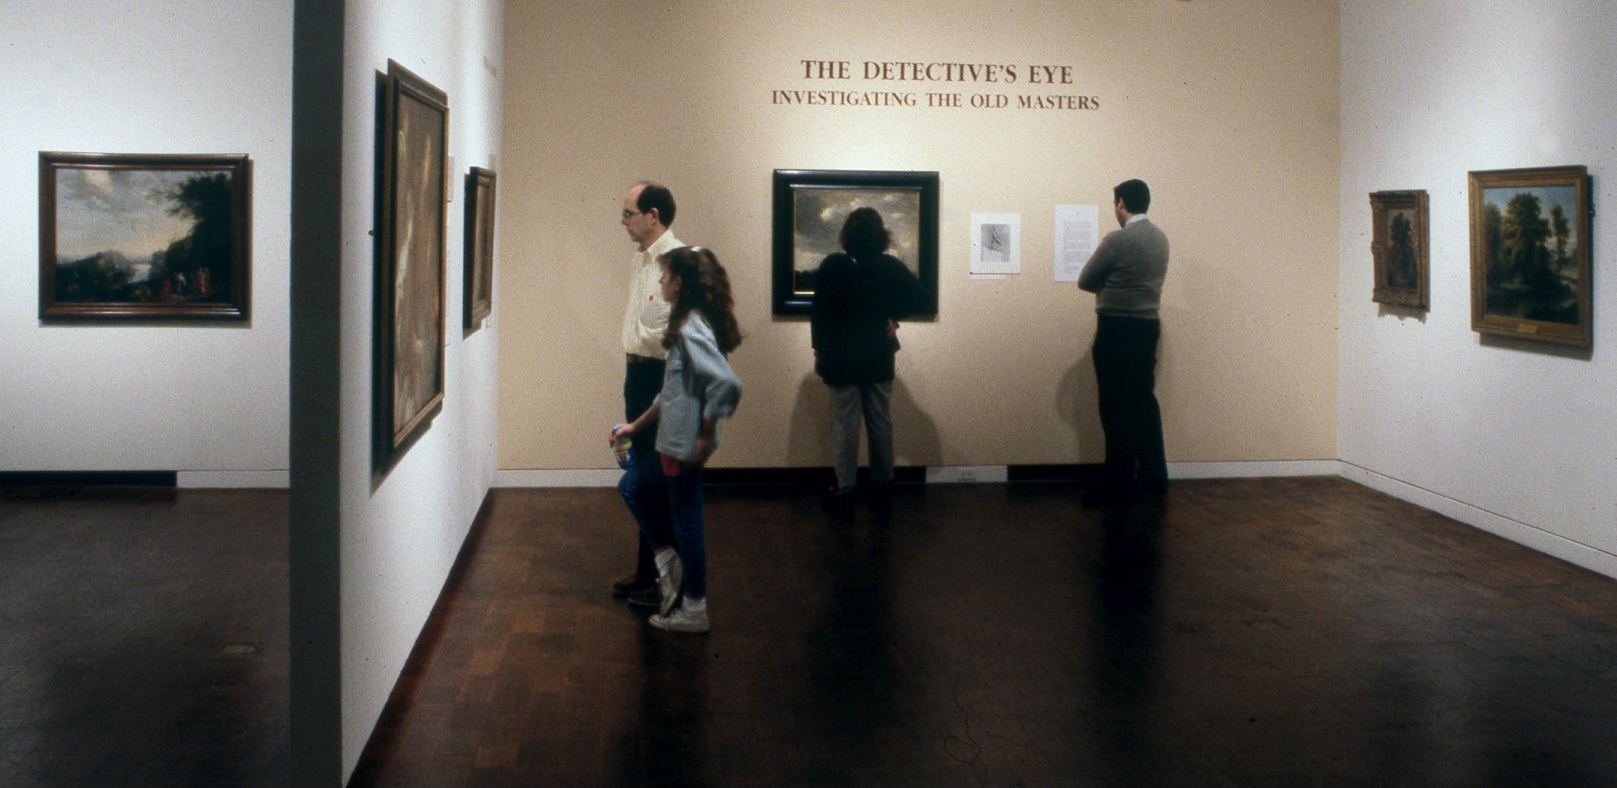 exh_mam_detectives_eye_1989_01_20_002-e1548179920126.jpg